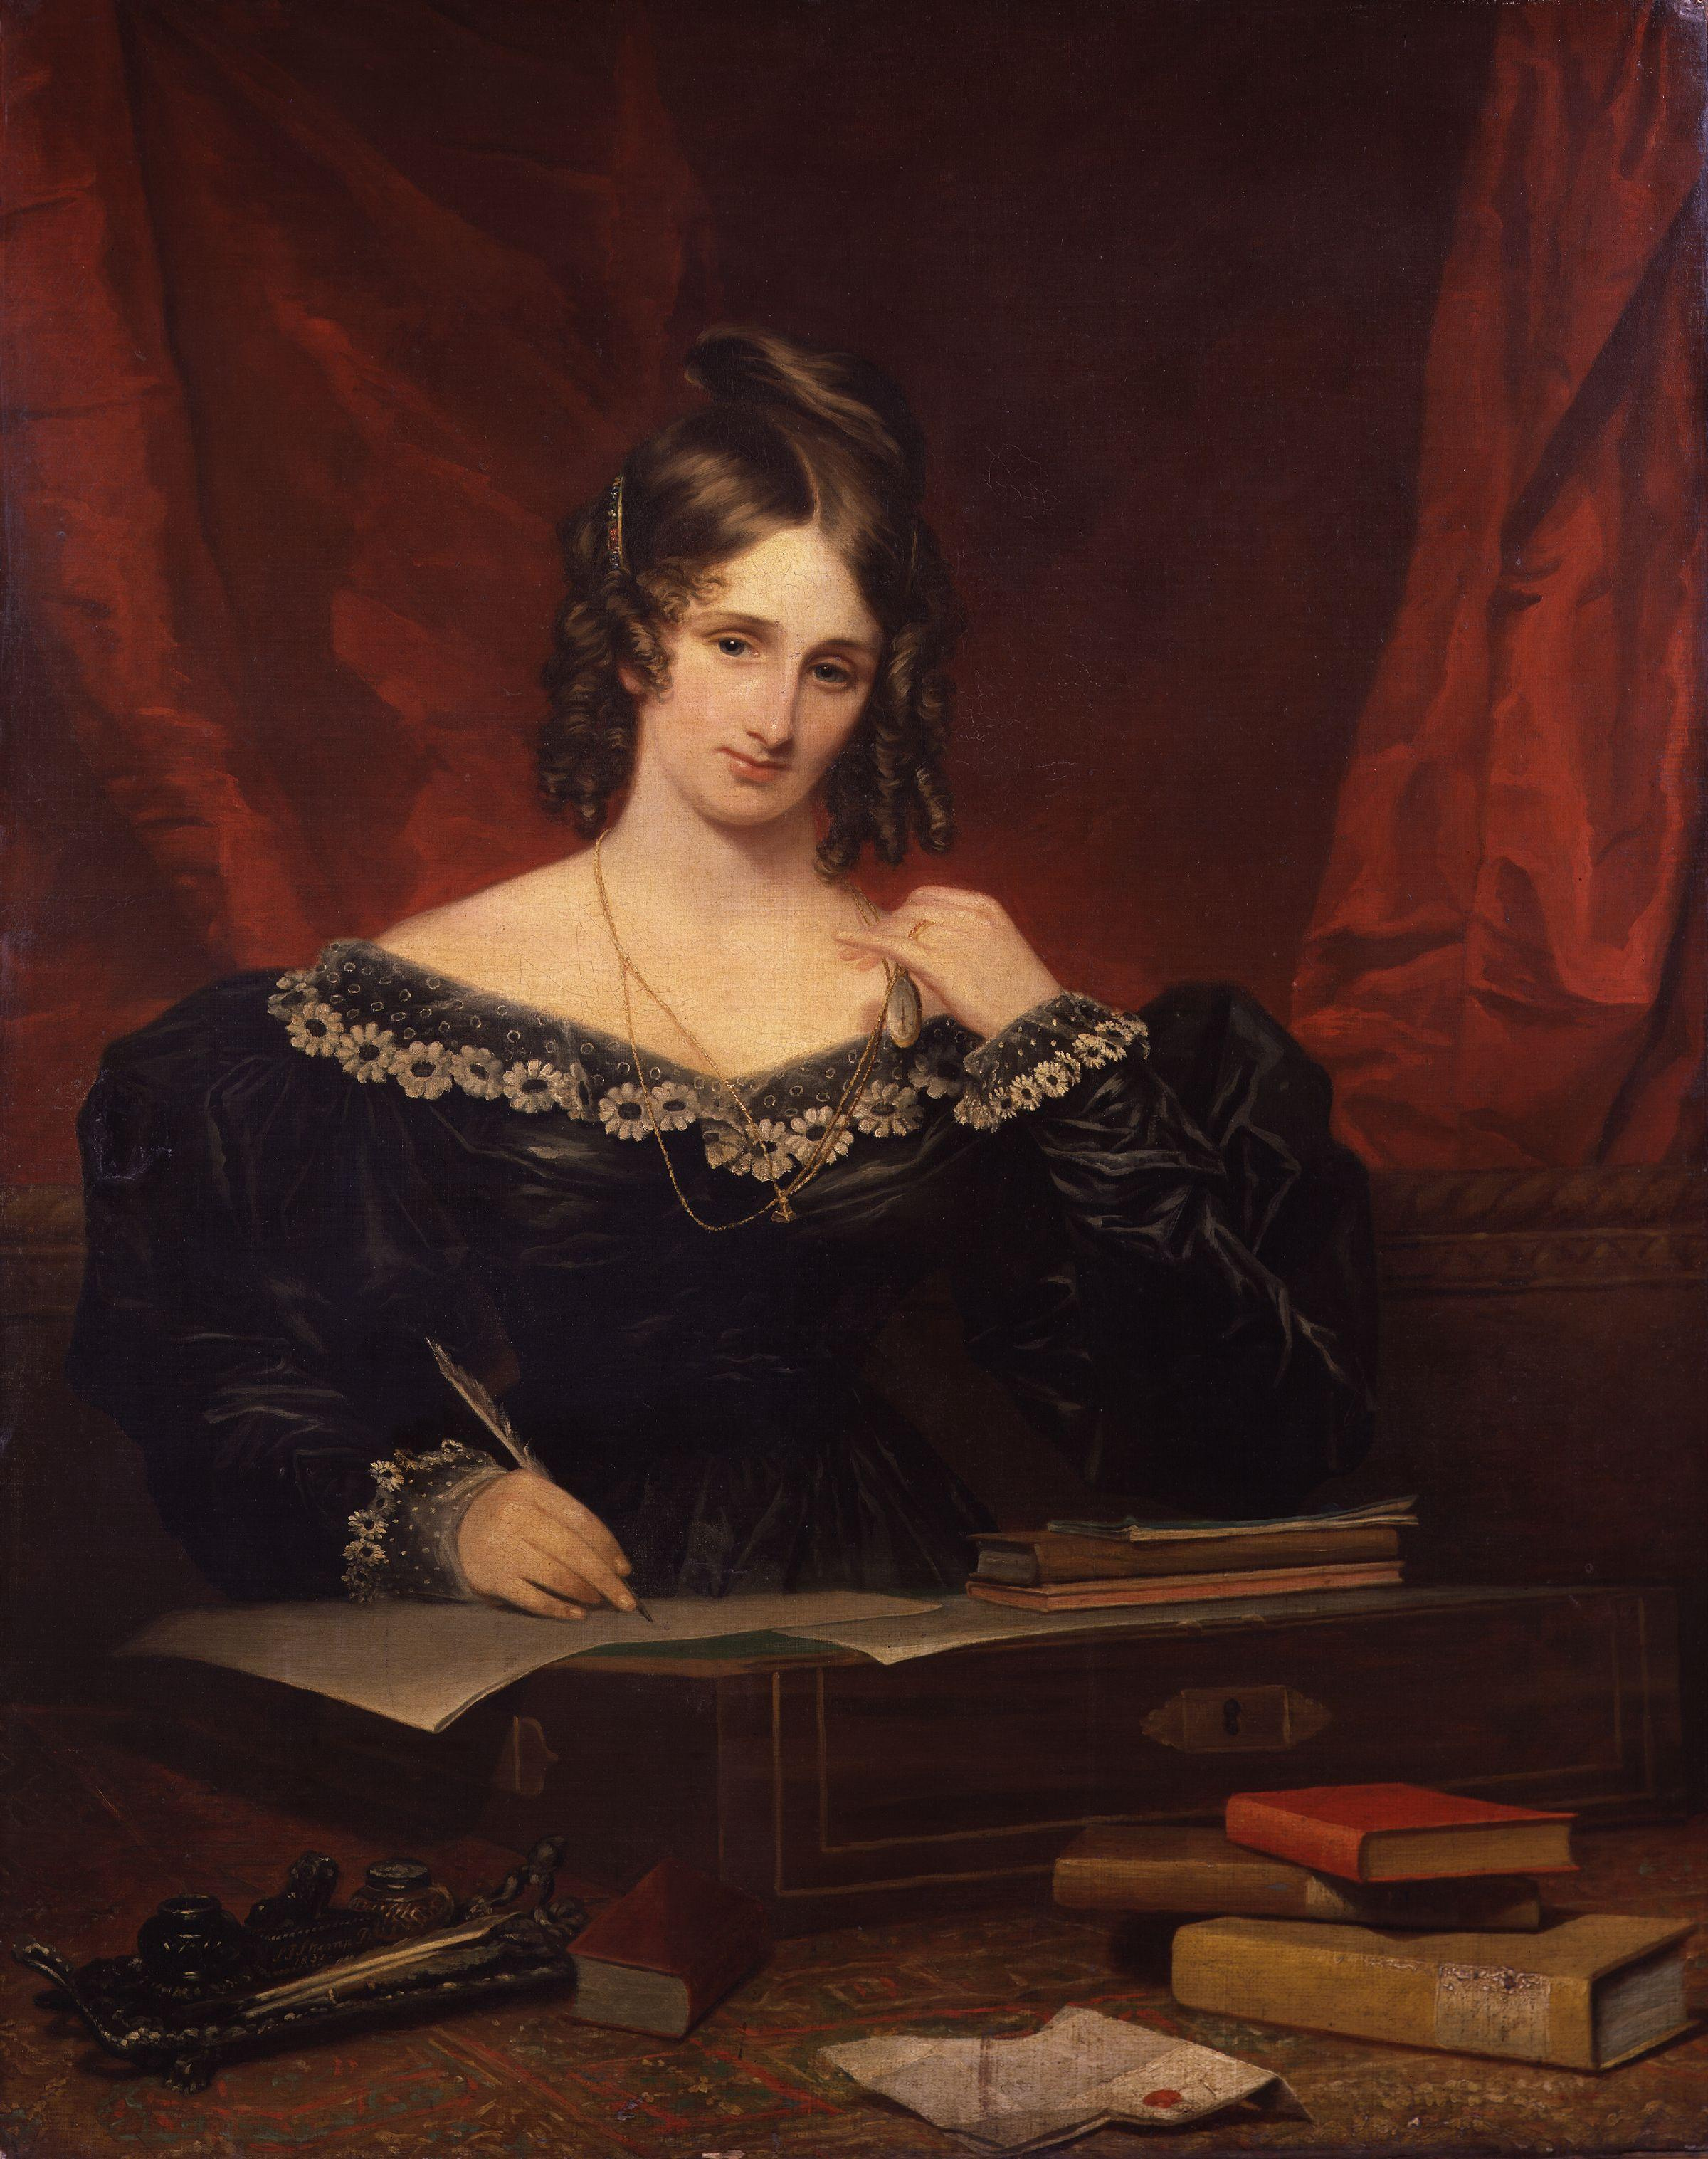 A biography and work of frankenstein by author mary shelley